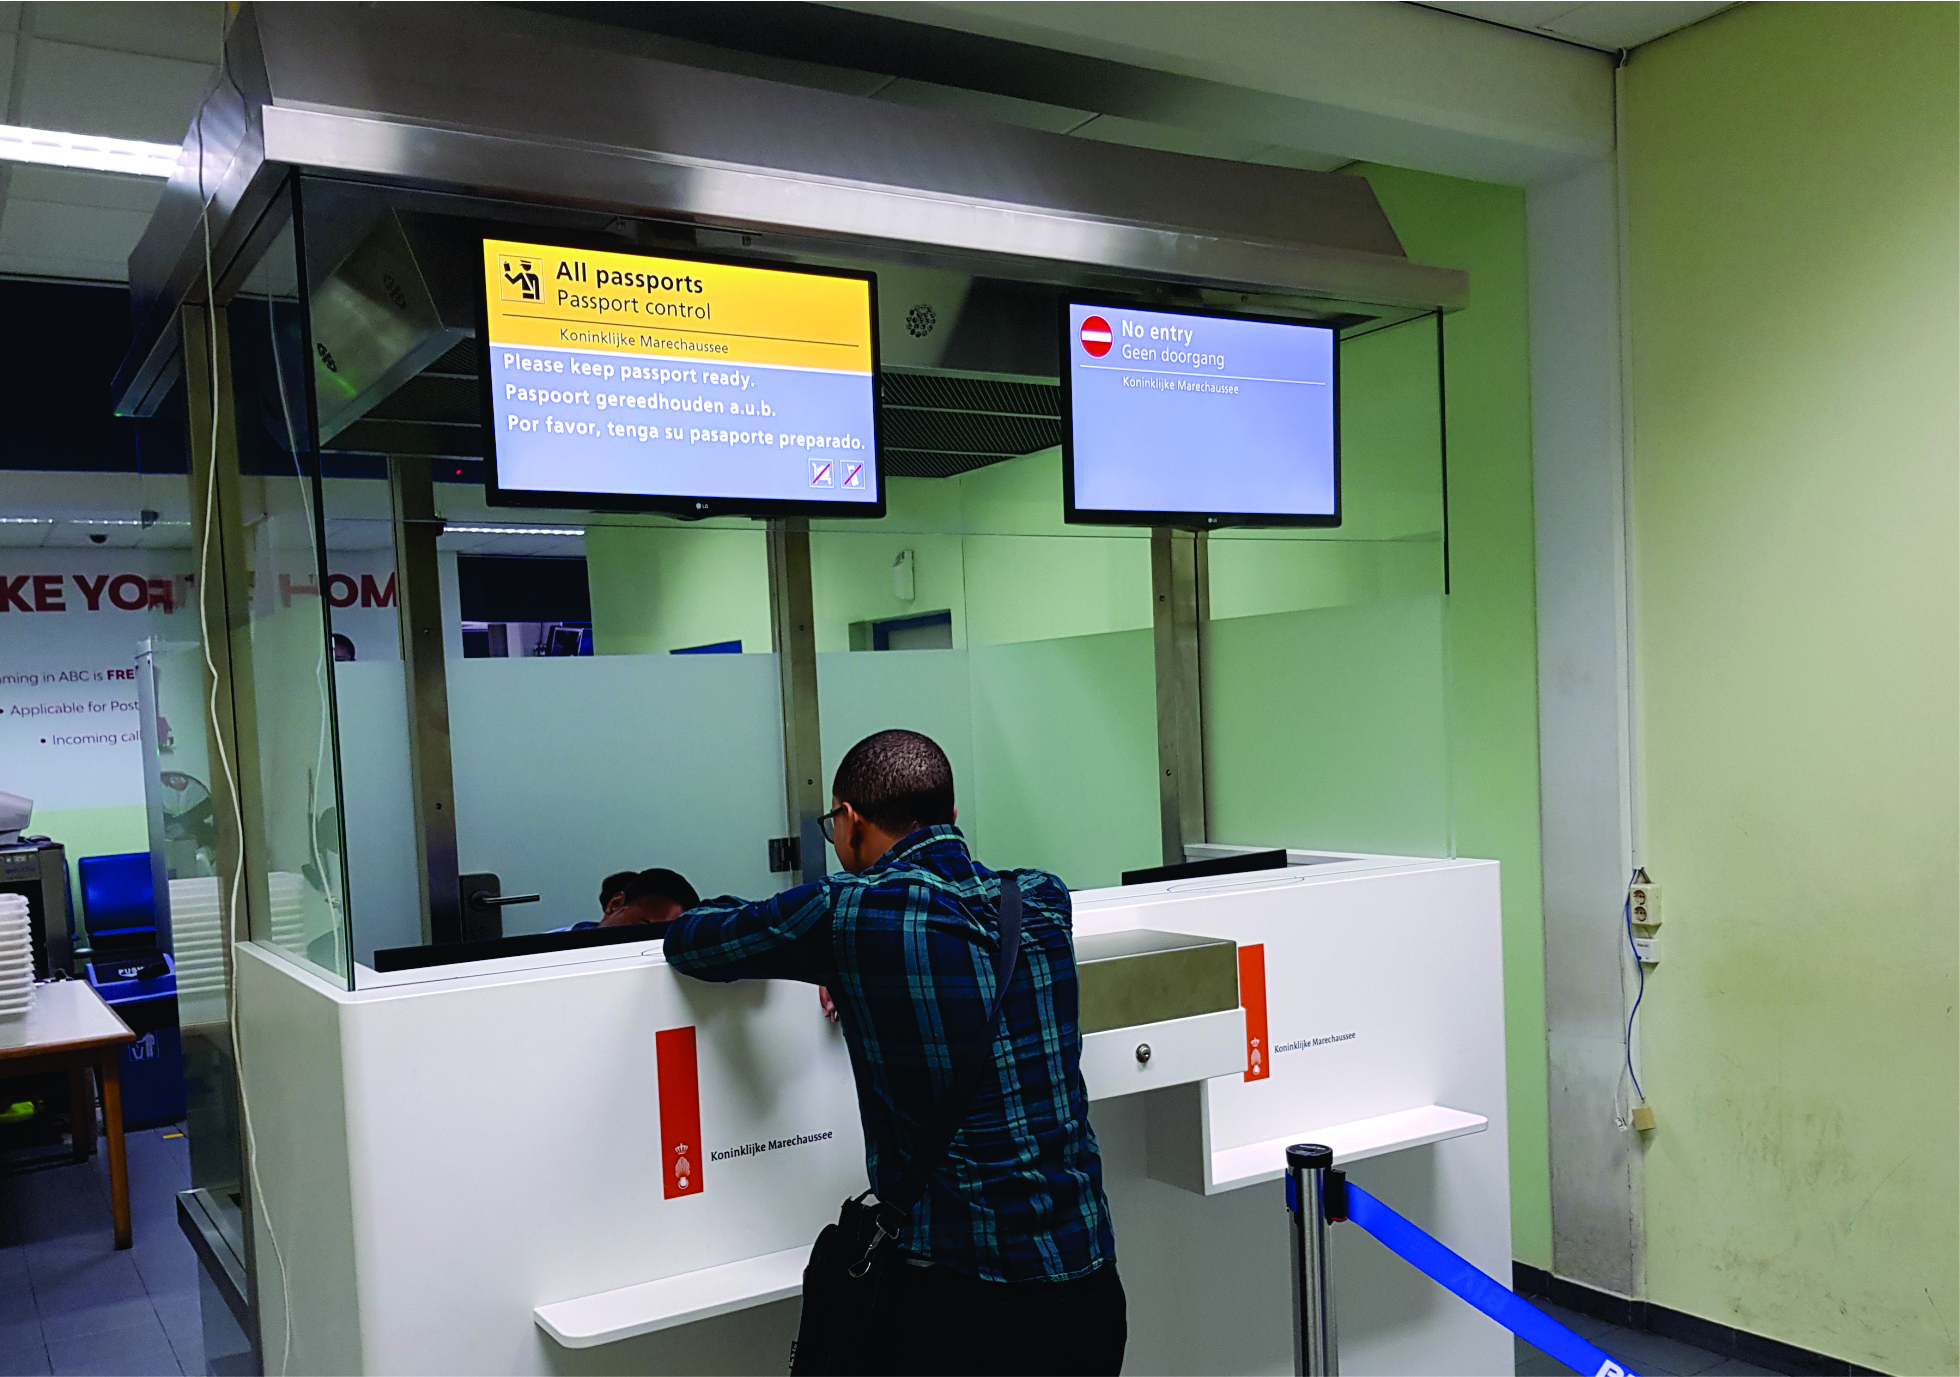 New immigration counters at BIA